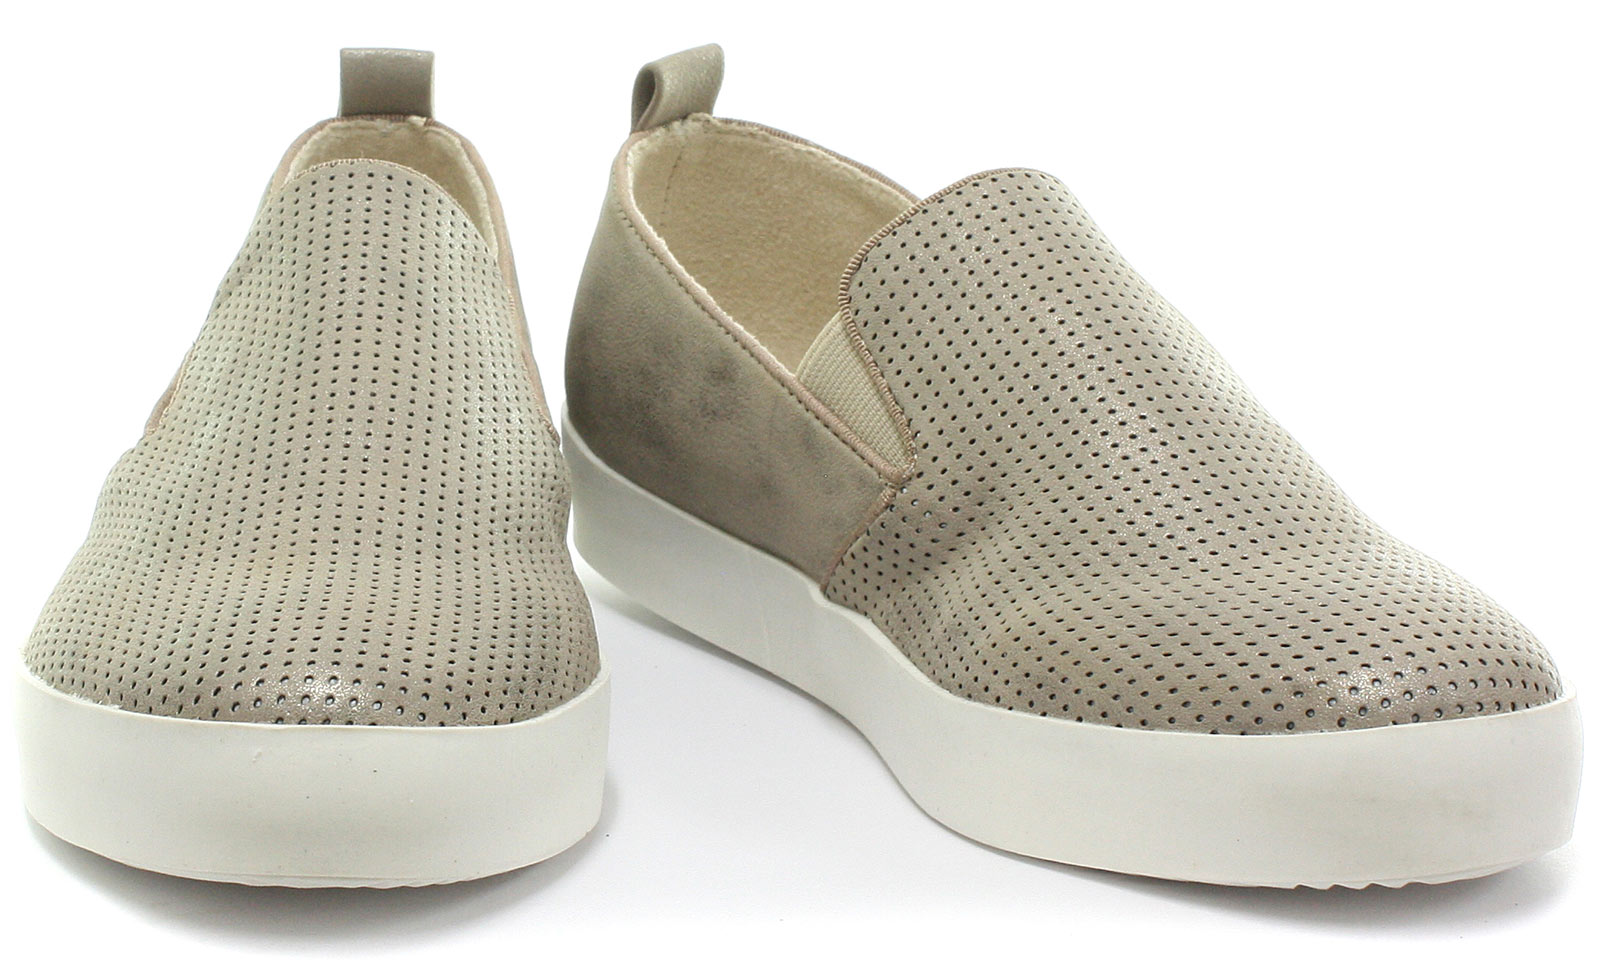 New-Cipriata-Donatella-Womens-Twin-Gusset-Casual-Shoes-ALL-SIZES-AND-COLOURS miniature 11